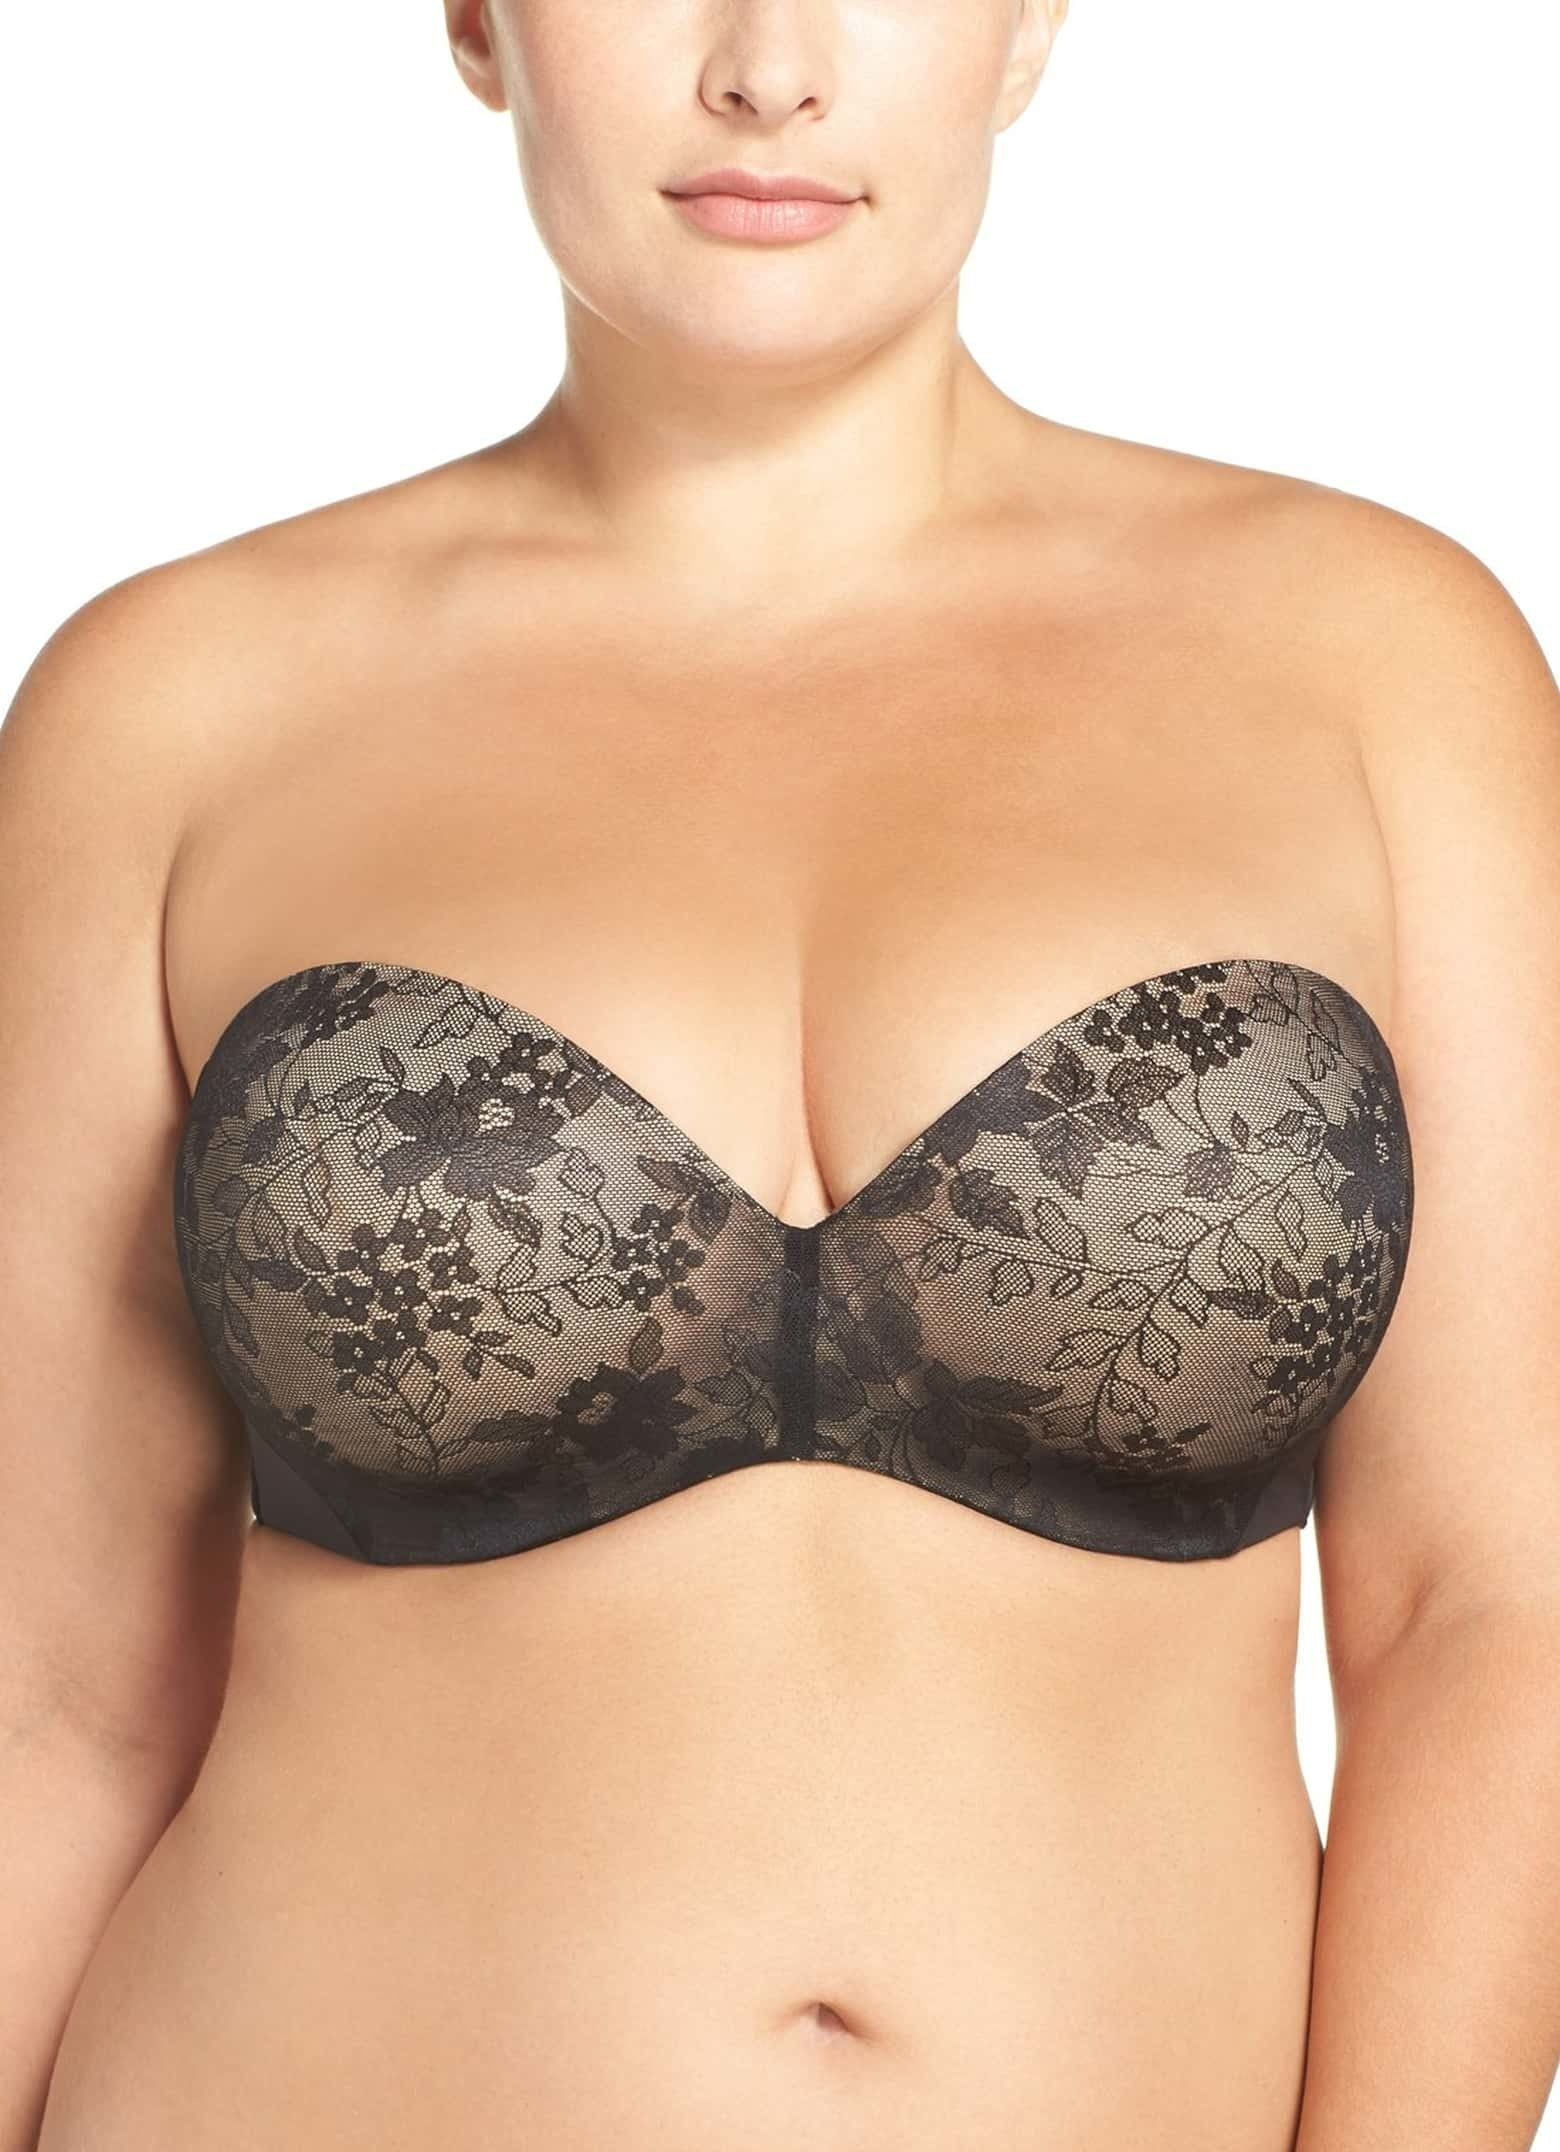 "Promising review: ""I love this bra. I wear a 42DD so it's hard to find strapless bras that fit! This one stays put and has a great shape. Originally I wanted nude, but because it was sold out in my size, I went with the black one which is more like a very light black over nude, it's so neutral and pretty. I even recommended this style to someone else who ended up buying it too."" —SouthernCali123Get it from Nordstrom for $65 (available in sizes 40DDD–42H)."